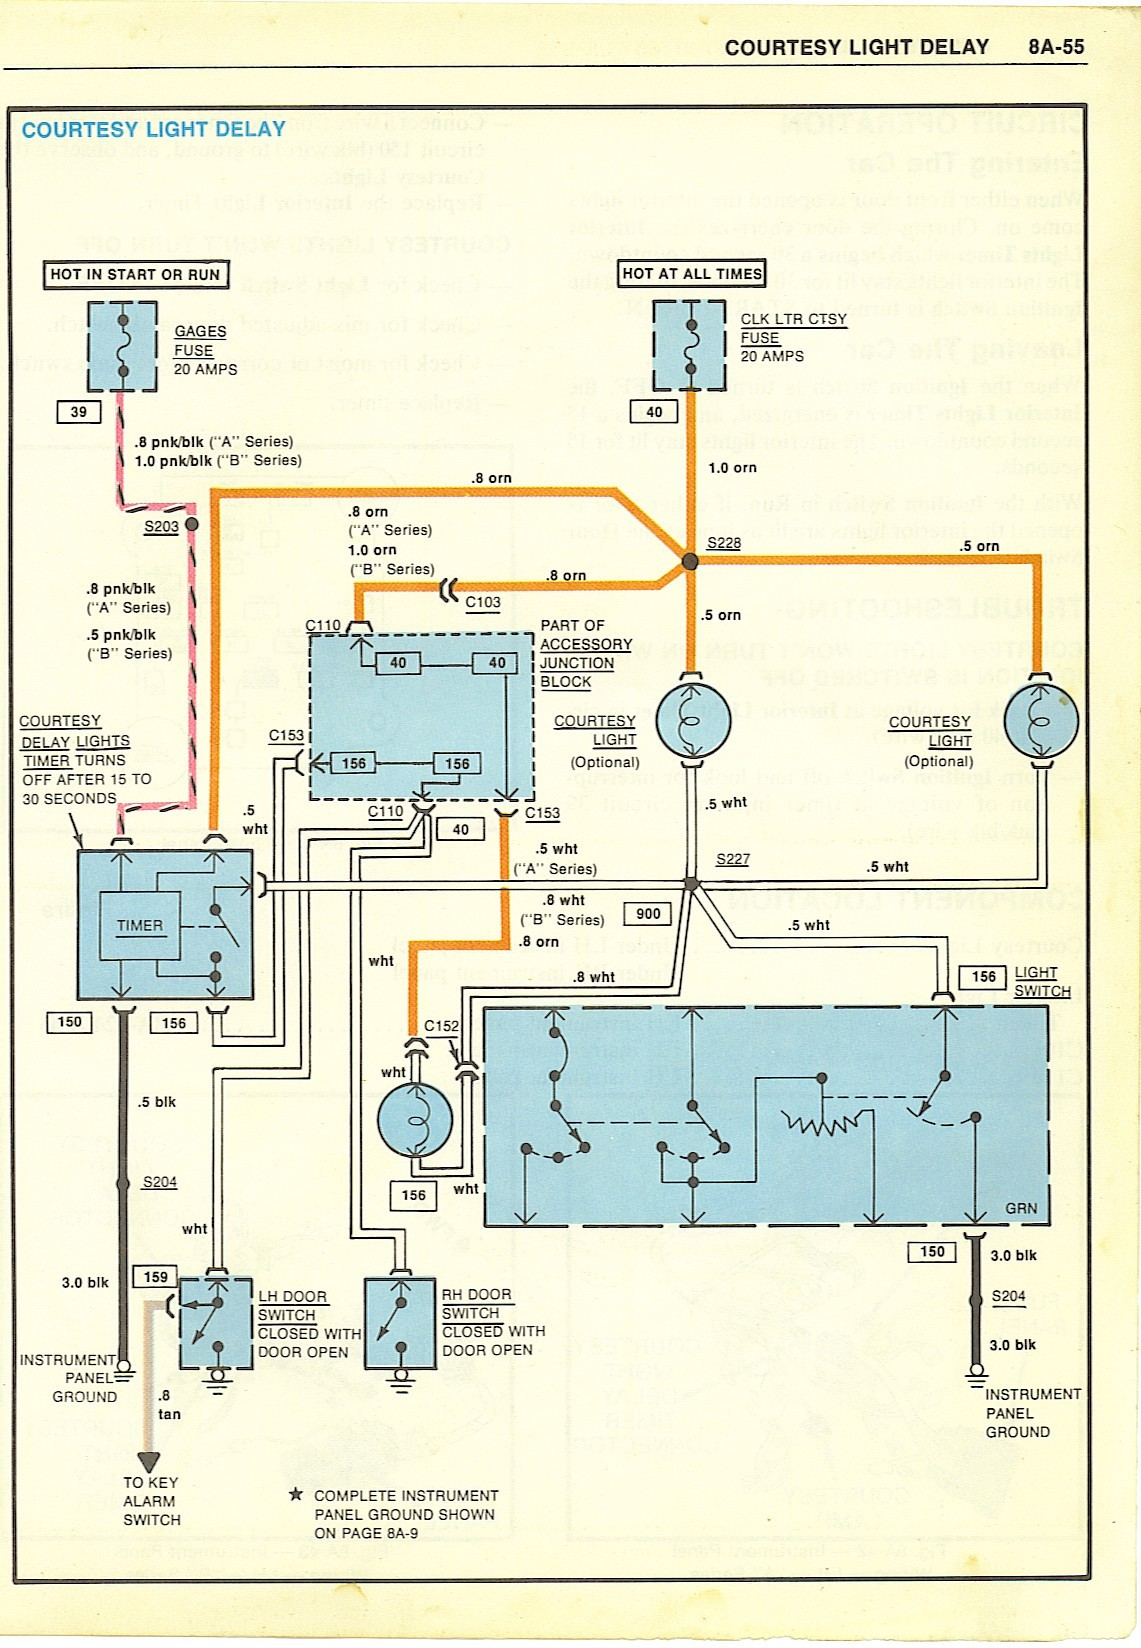 W900 Kenworth Ac Wiring Diagram | Wiring Diagram on kenworth wiring schematics wiring diagrams, kenworth t600 schematic, kenworth t600 fuse box diagram, kenworth t600 parts, kenworth t600 specifications, kenworth t600 drawings, kenworth smart wheel wiring diagram, kenworth t600 blueprints, kenworth t600 chassis, kenworth t600 chrome, kenworth t600 day cab, kenworth radio wiring diagram, kenworth t600 fuse panel, kenworth t600 starter, kenworth t660, kenworth t600 suspension, kenworth t600 lights, kenworth t600 dump truck, kenworth t700 wiring diagrams, kenworth t800 wiring diagram,